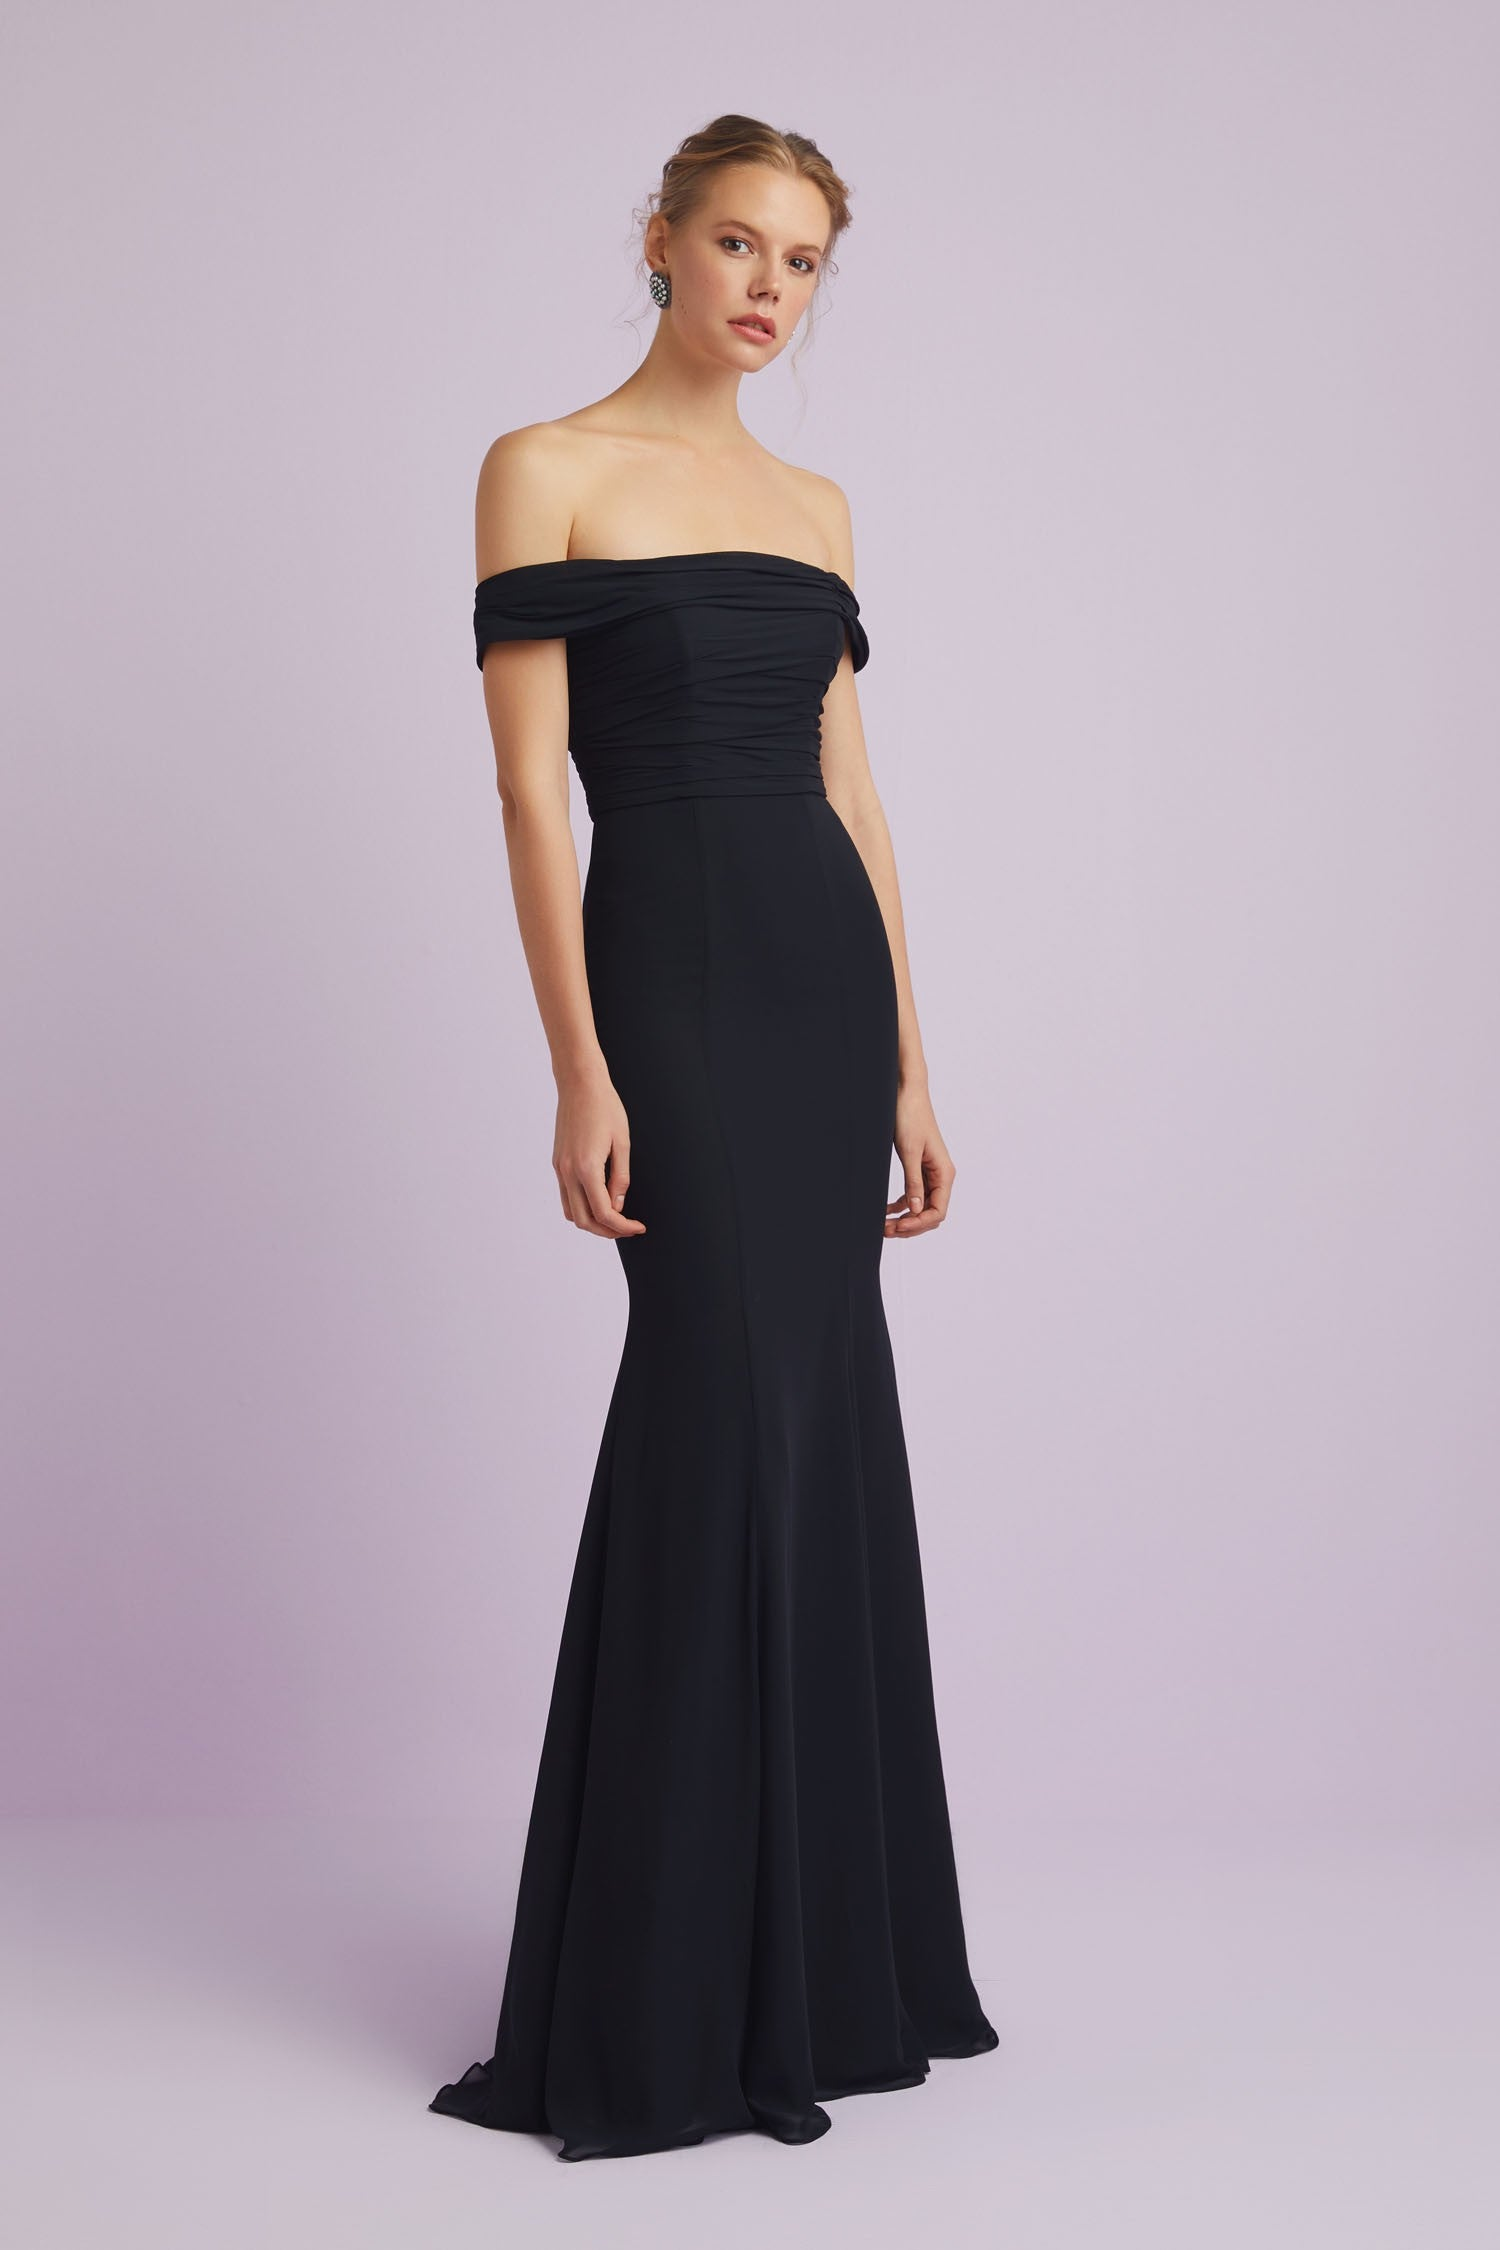 Off The Shoulder Formal Dress